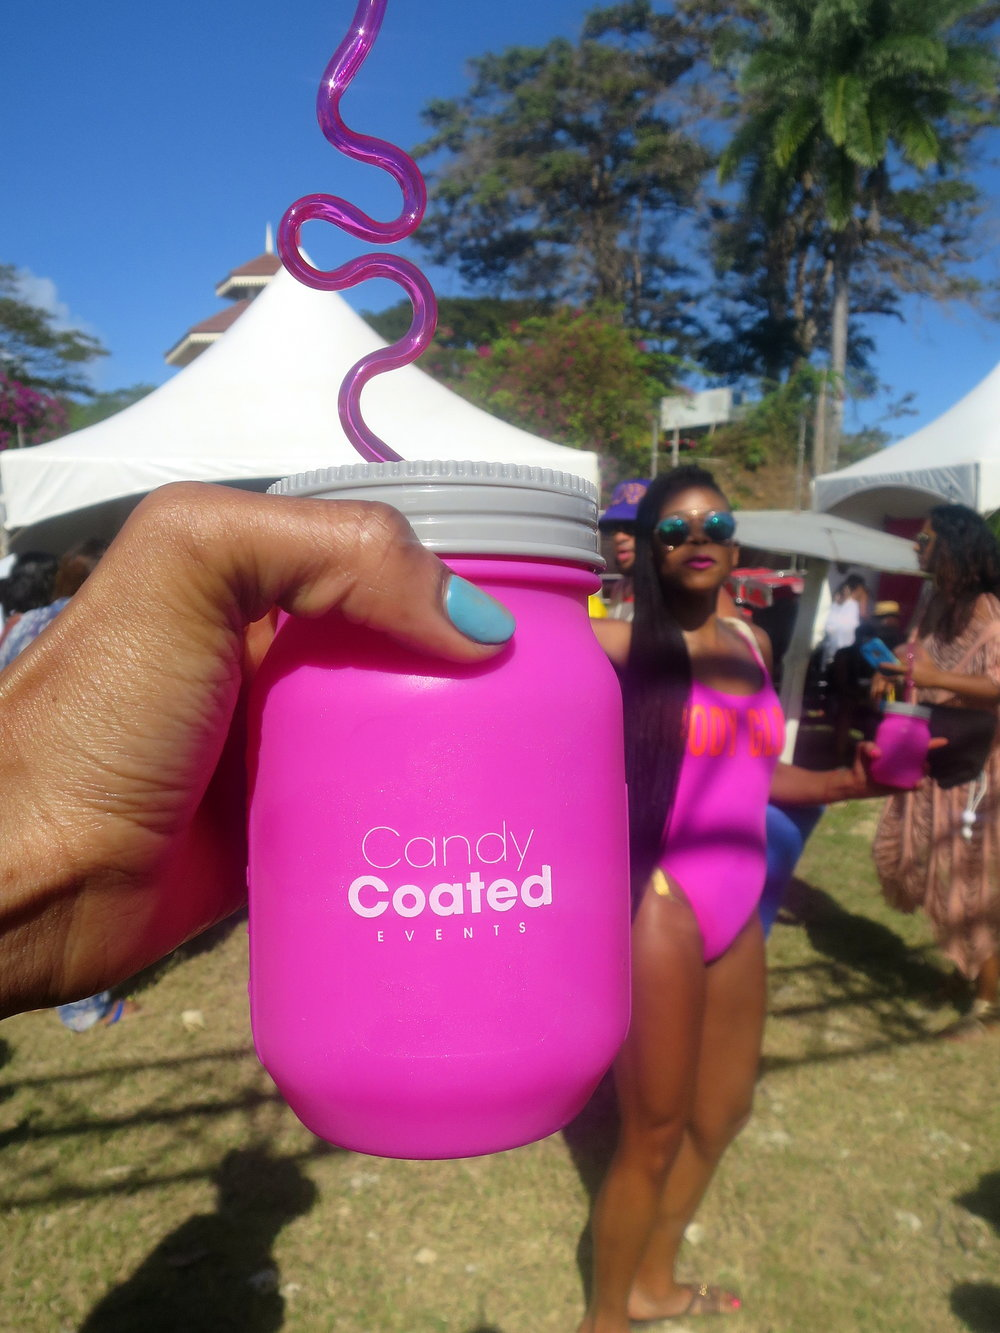 candy coated cup.JPG